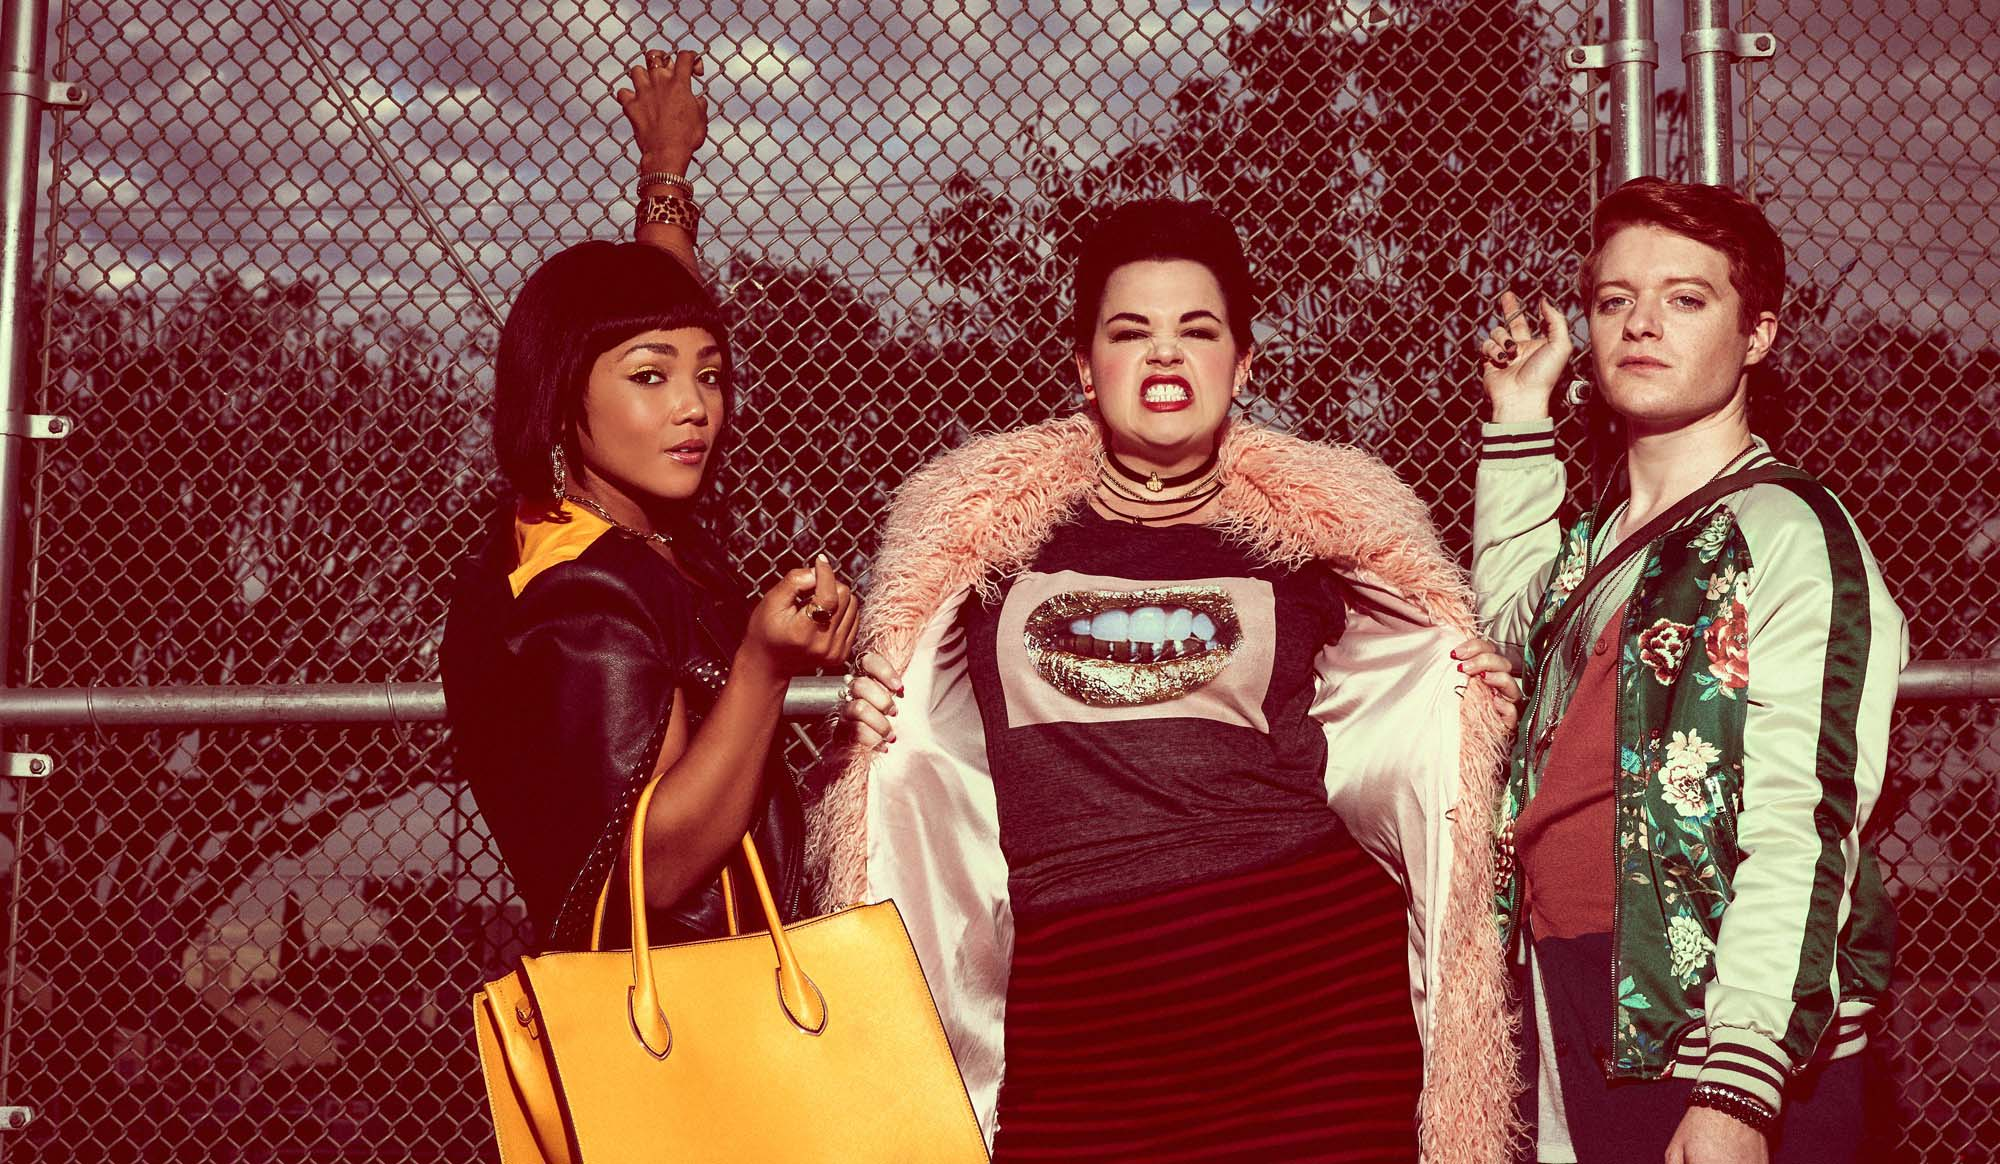 Heathers': Why the TV reboot is an epic fail - Film Daily